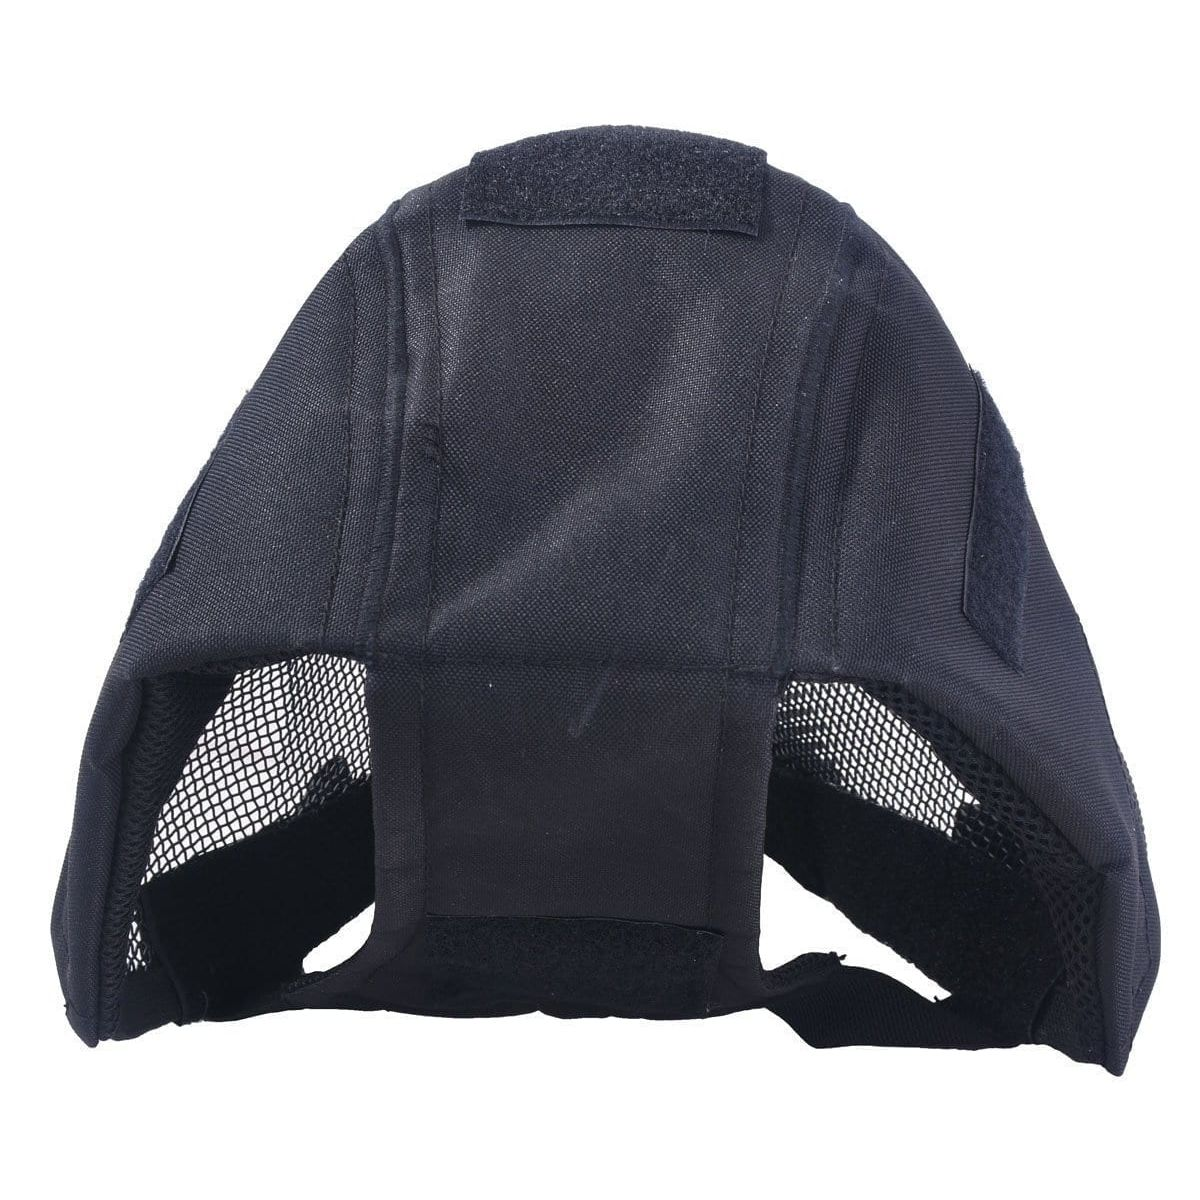 Airsoft Safety Mesh Mask Full Face & Ears Protection Fencing protection